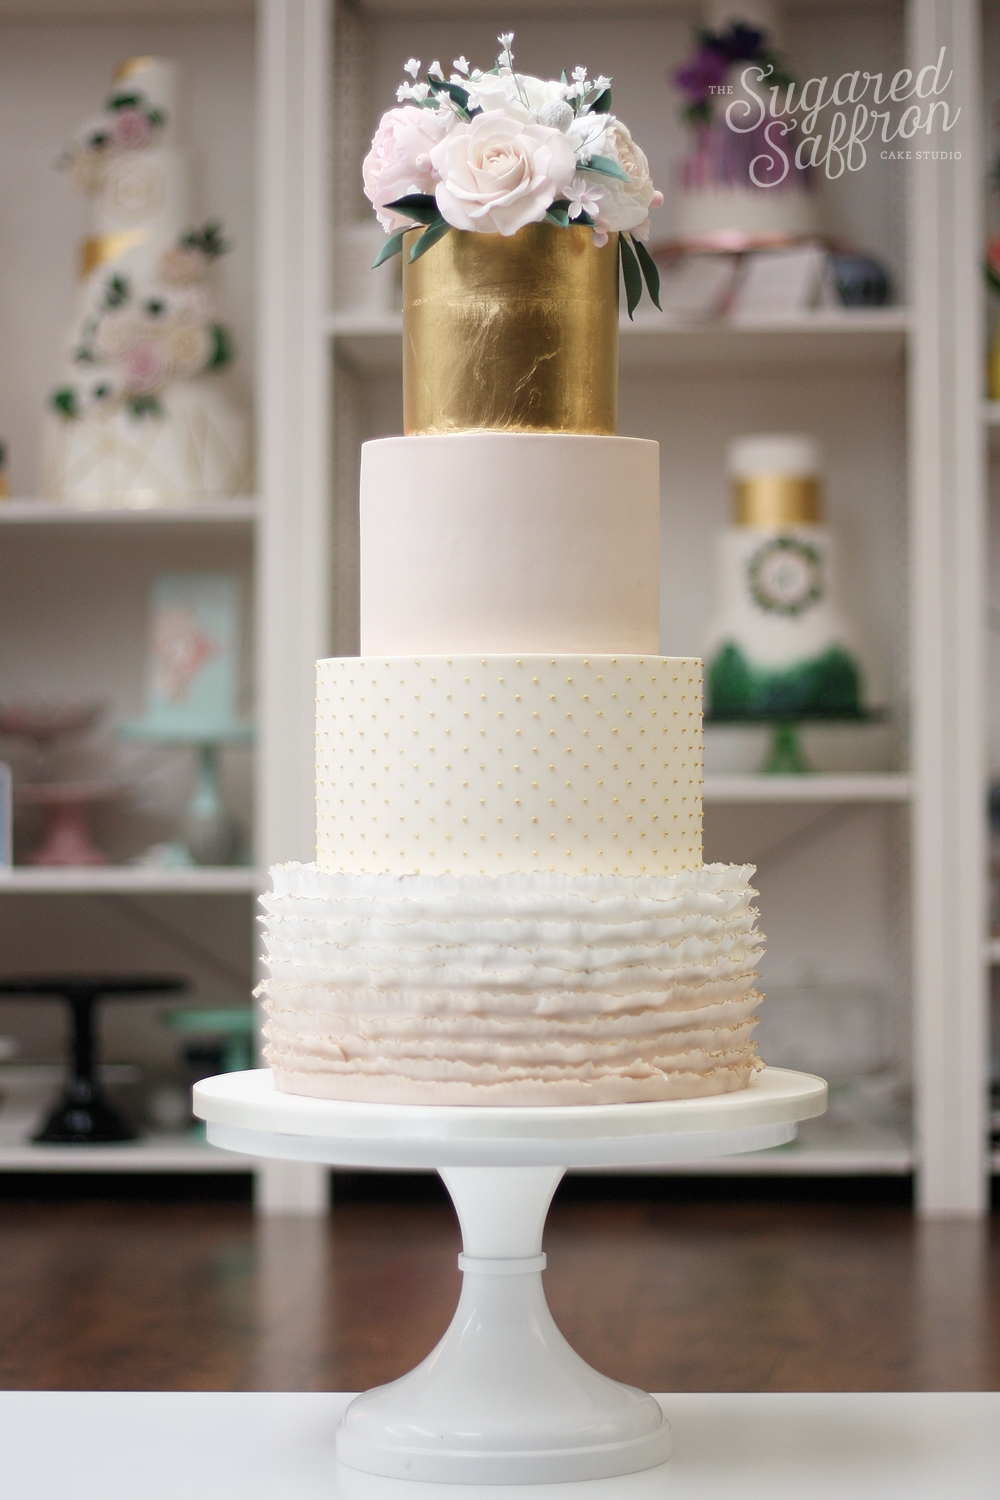 bouquet of sugar flowers on gold leaf and mink coloured tiers. Ruffles on bottom tier.